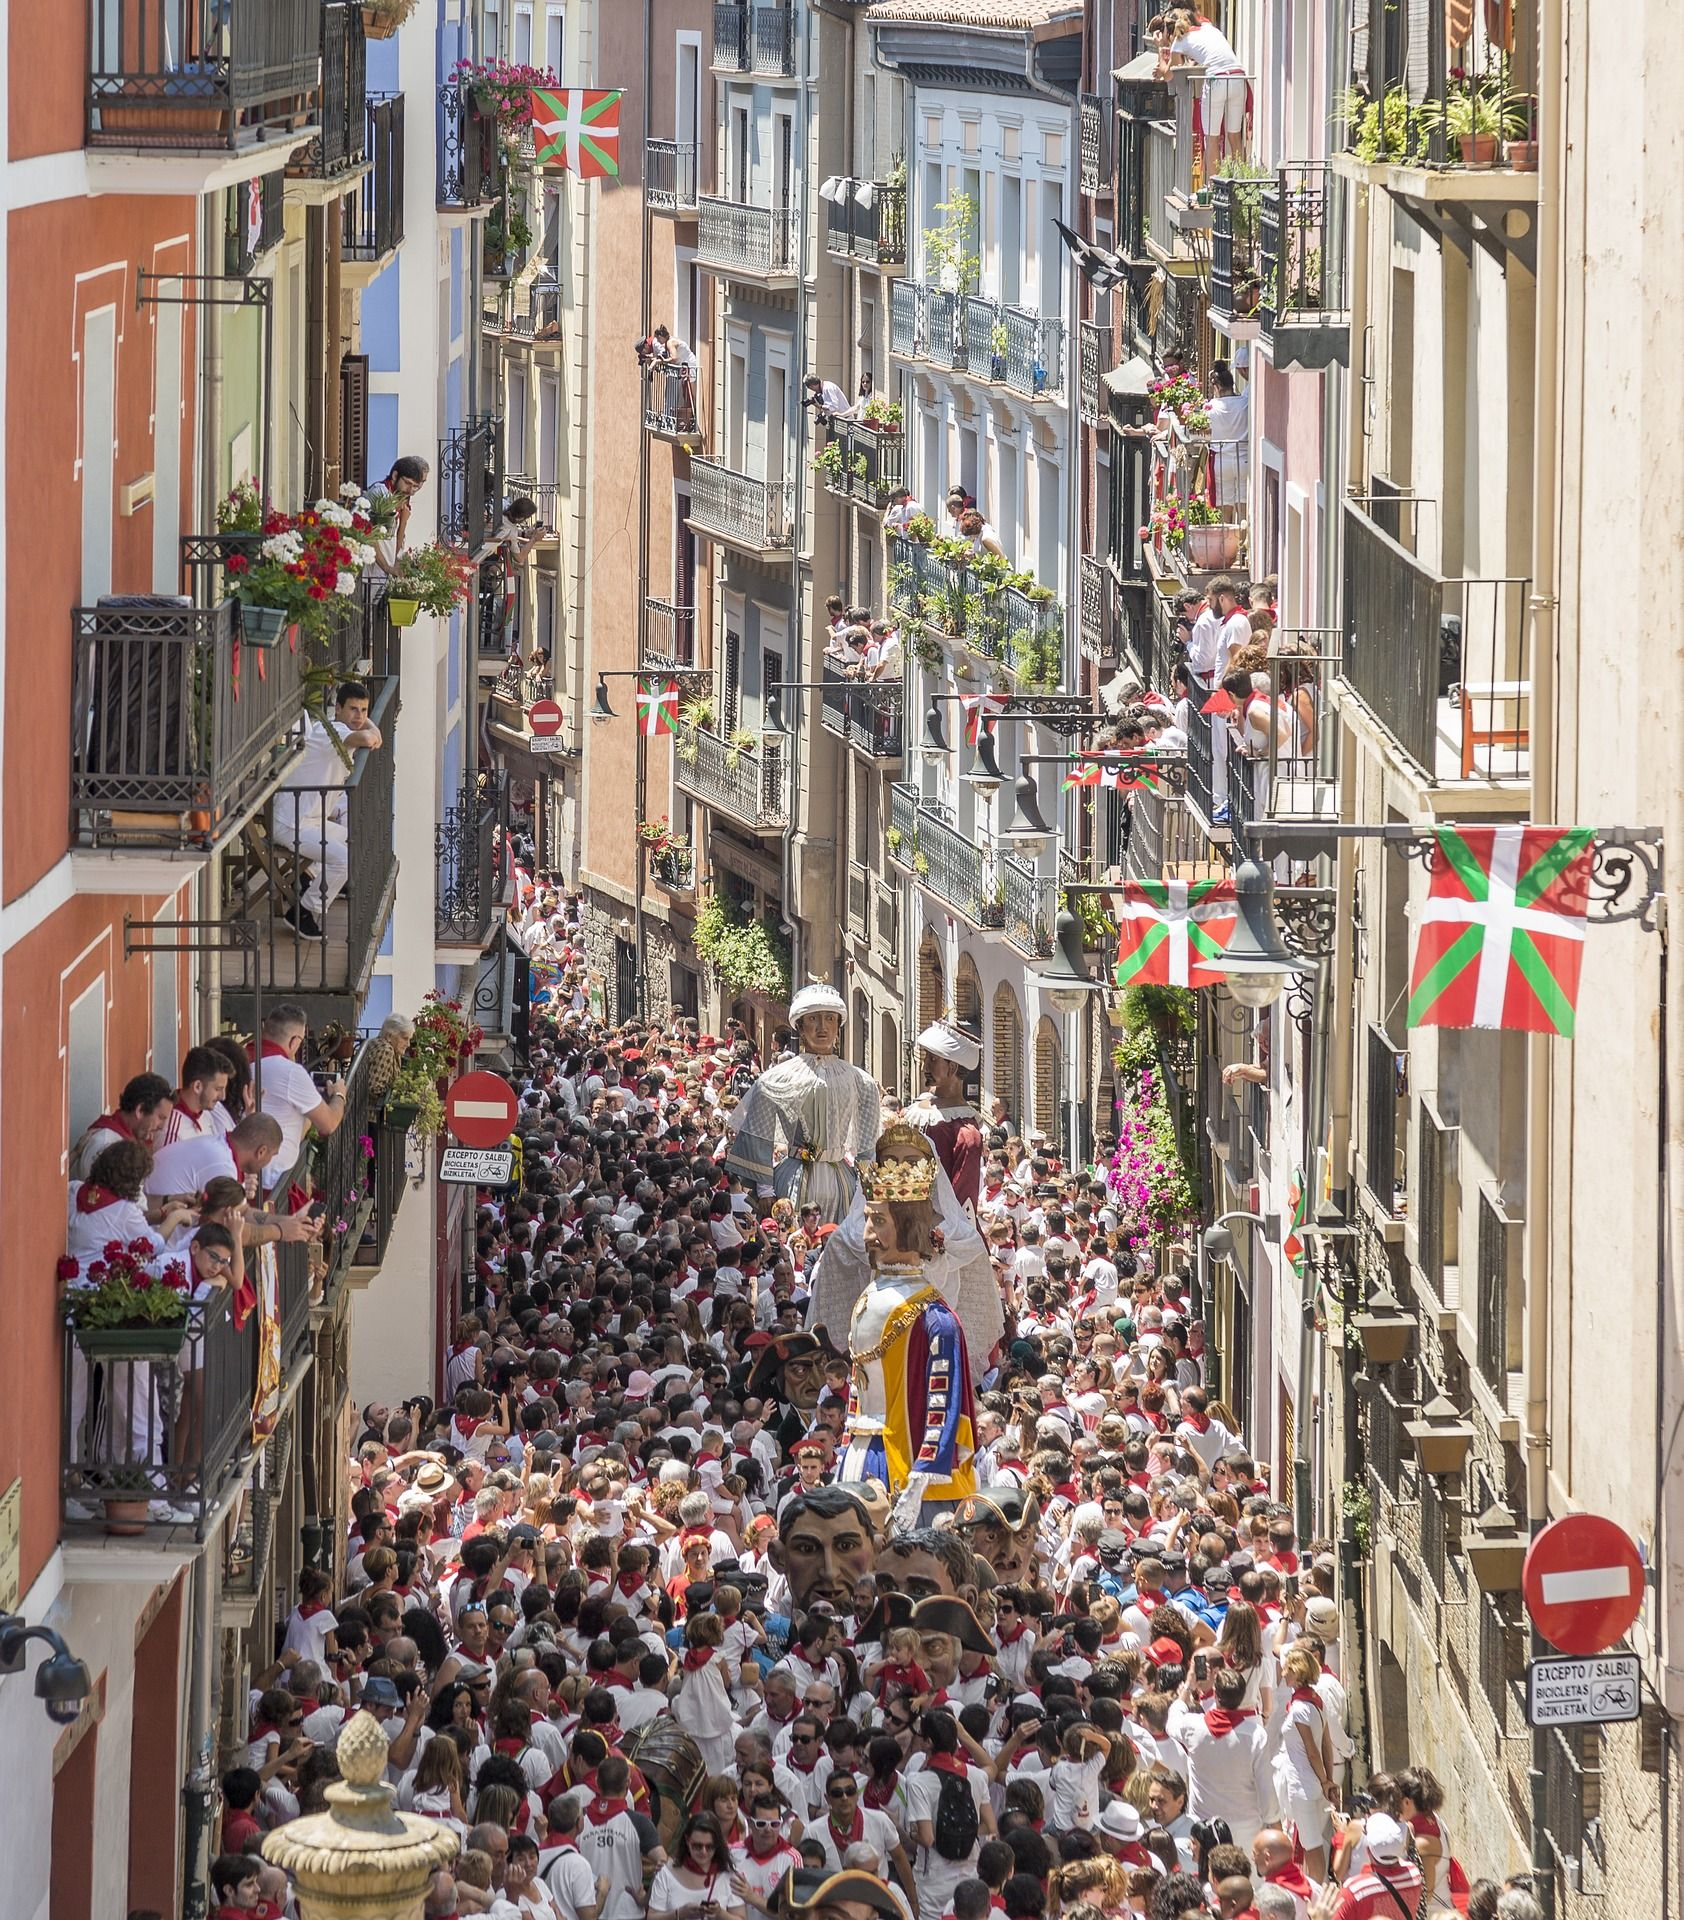 Come to Spain to San Fermines party and to learn Spanish in InterLenguis